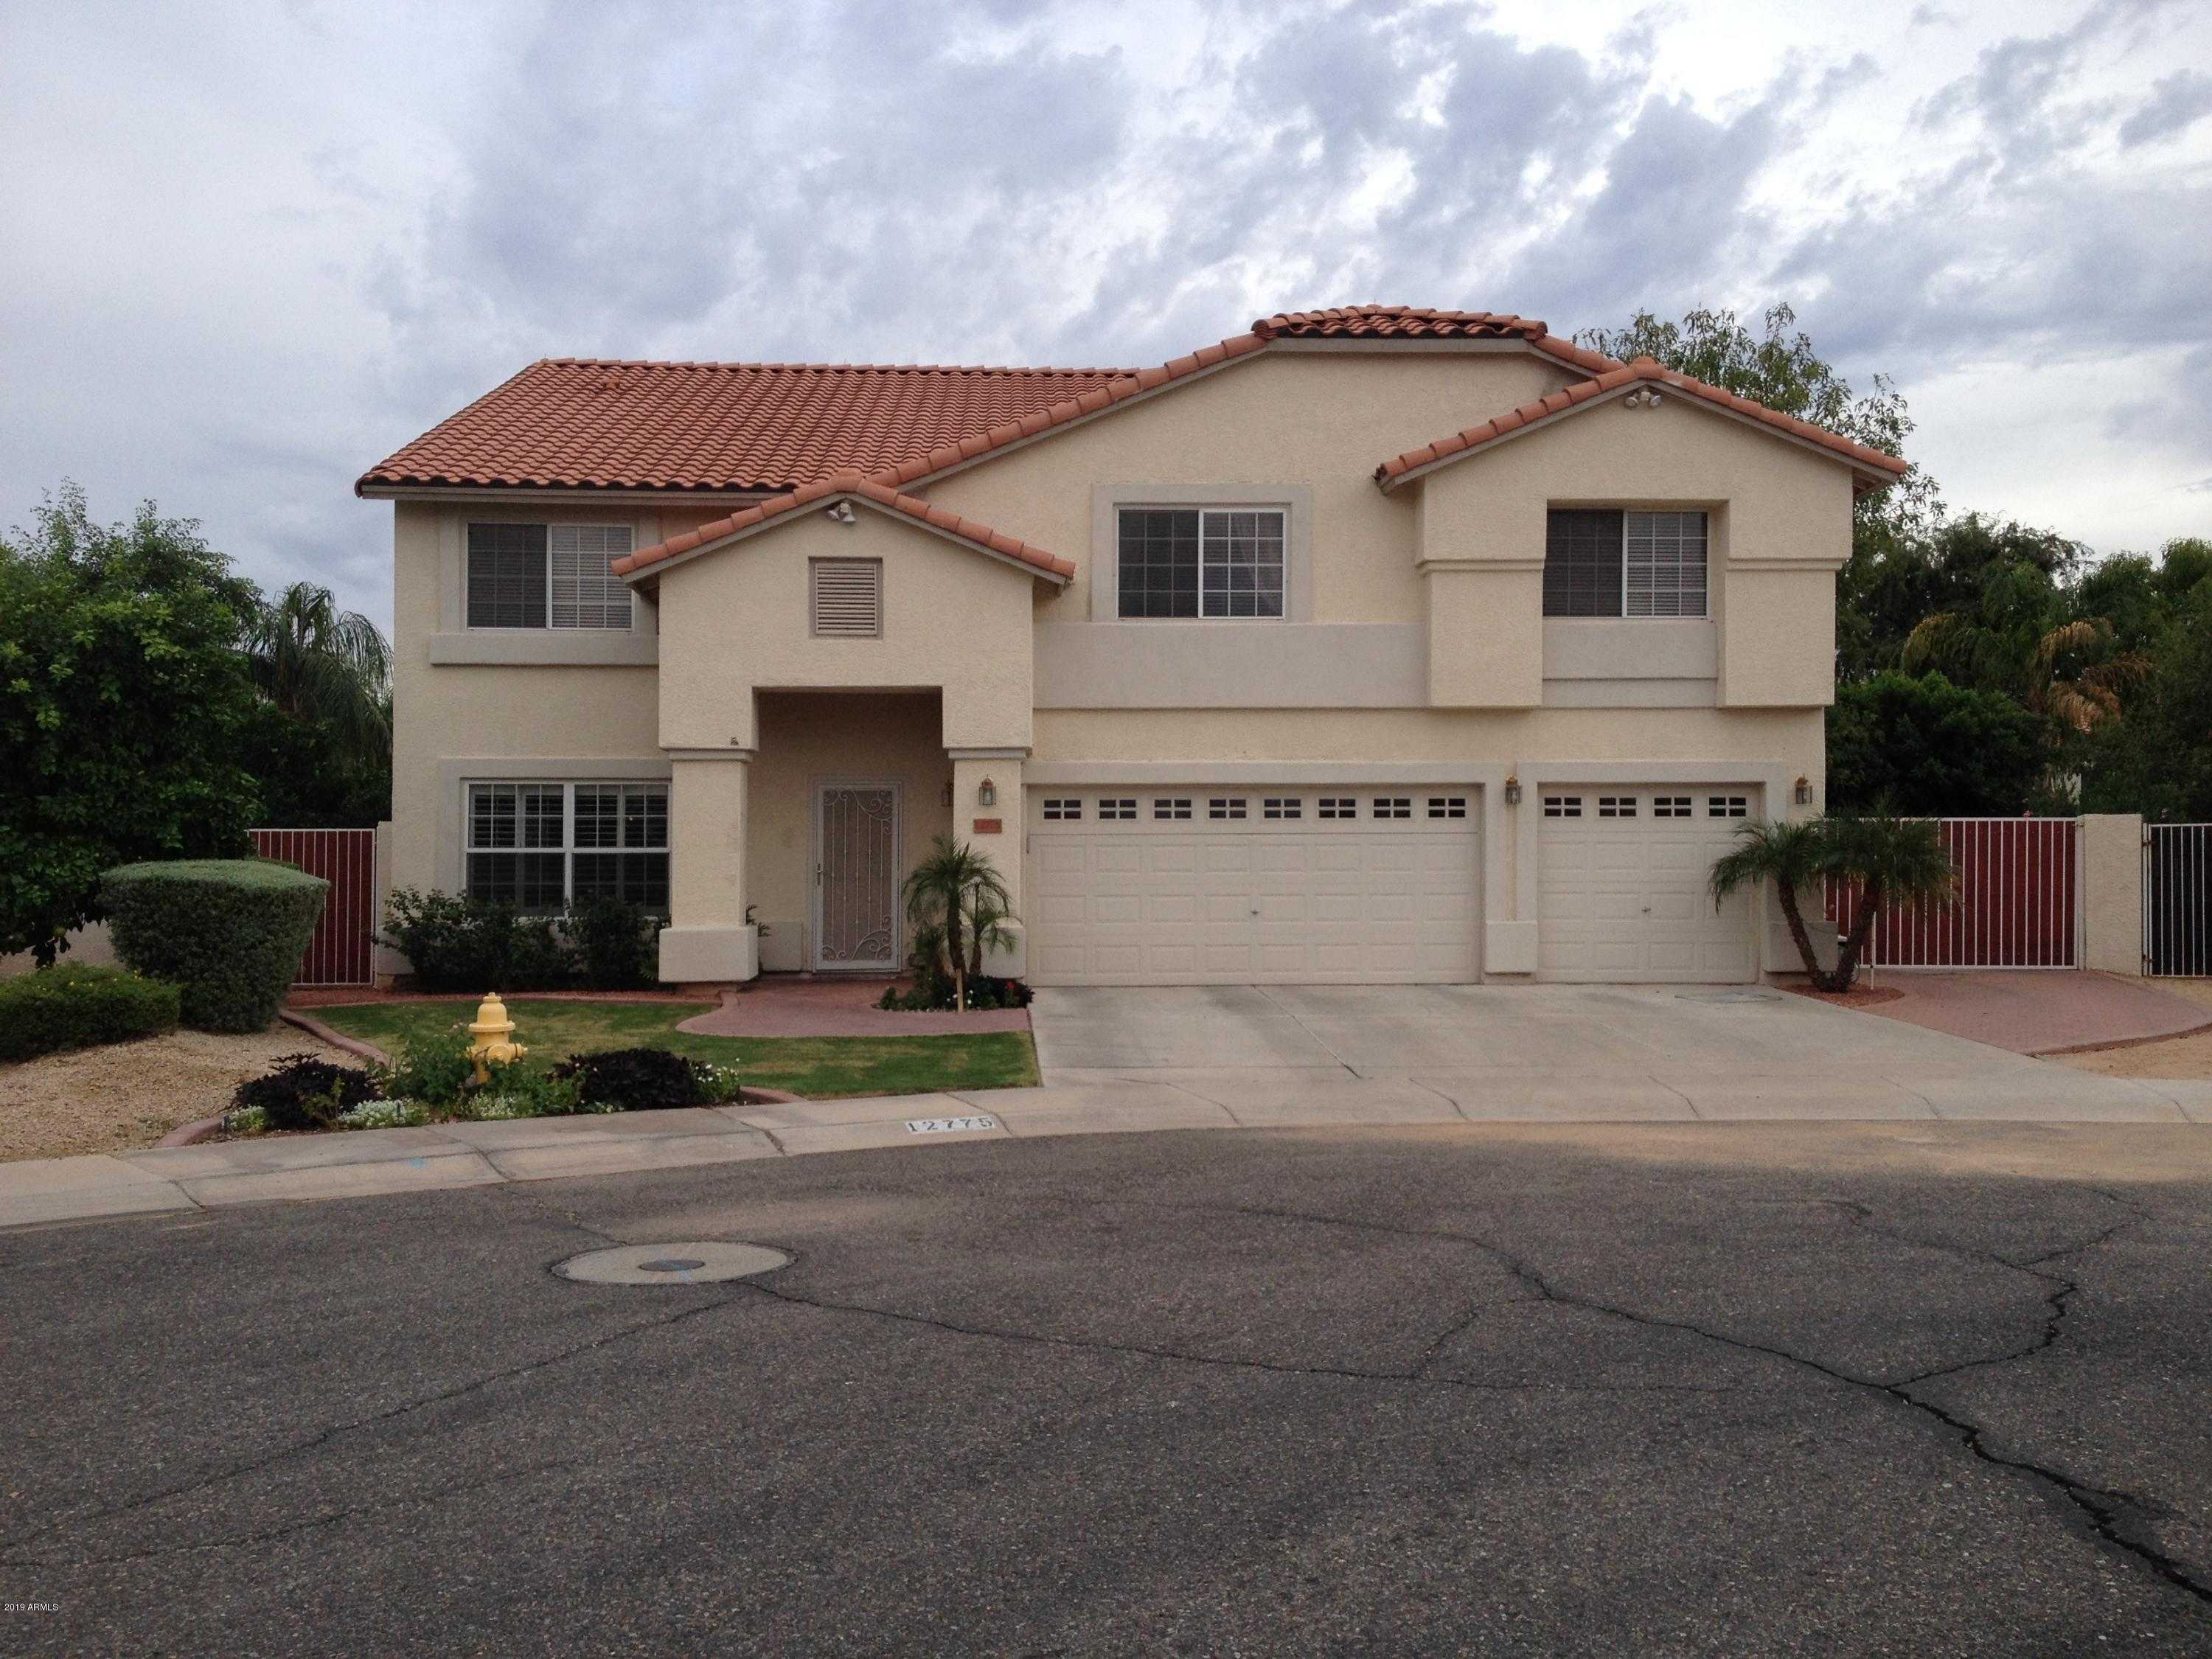 $594,500 - 5Br/4Ba - Home for Sale in Mission Groves 04 & 05, Glendale